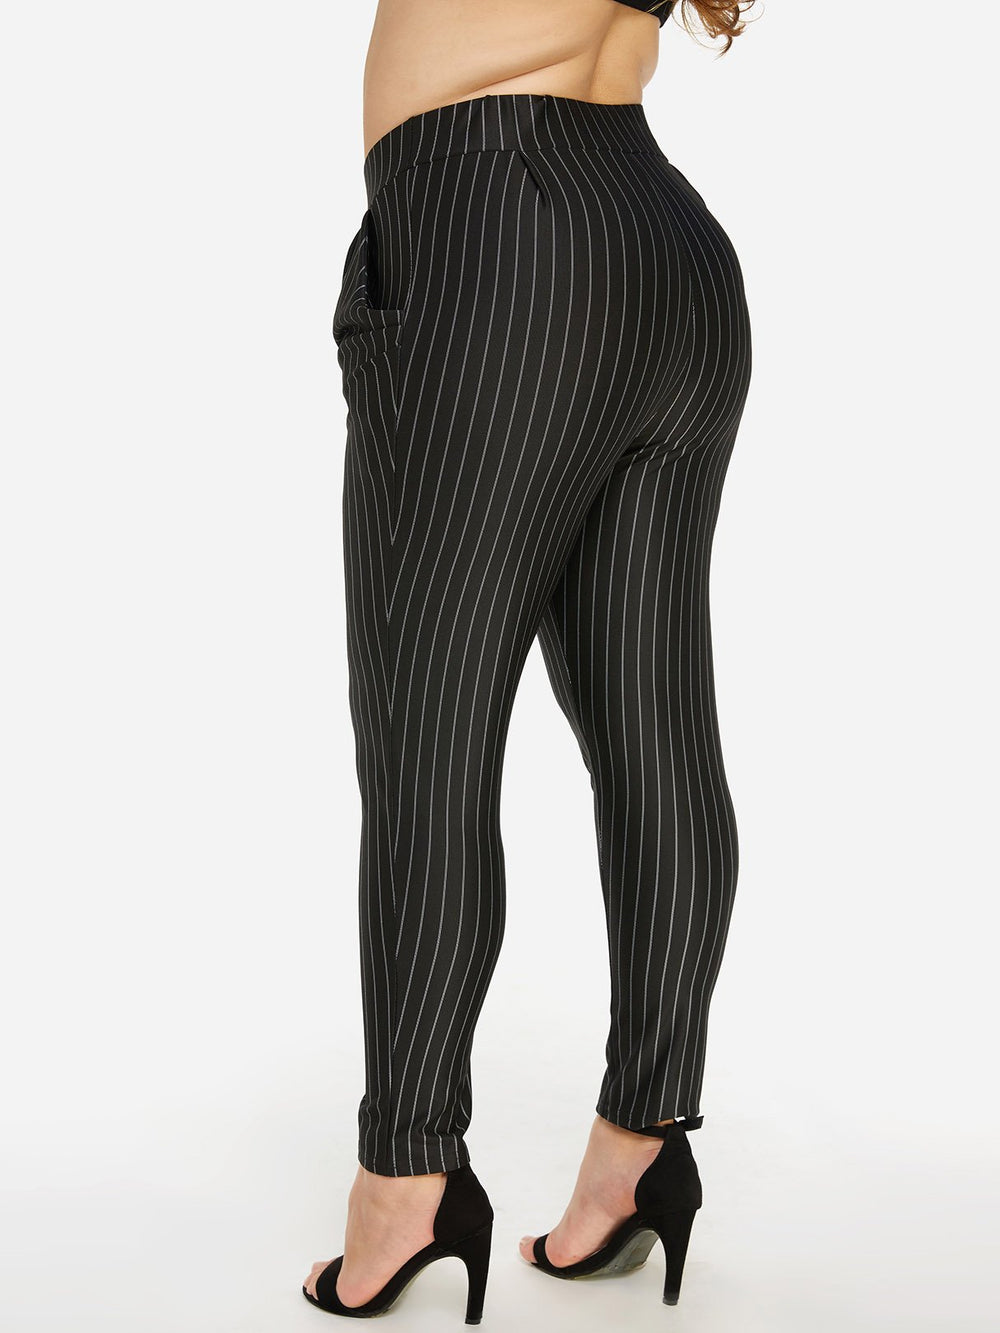 Plus Size Bottoms Cheap